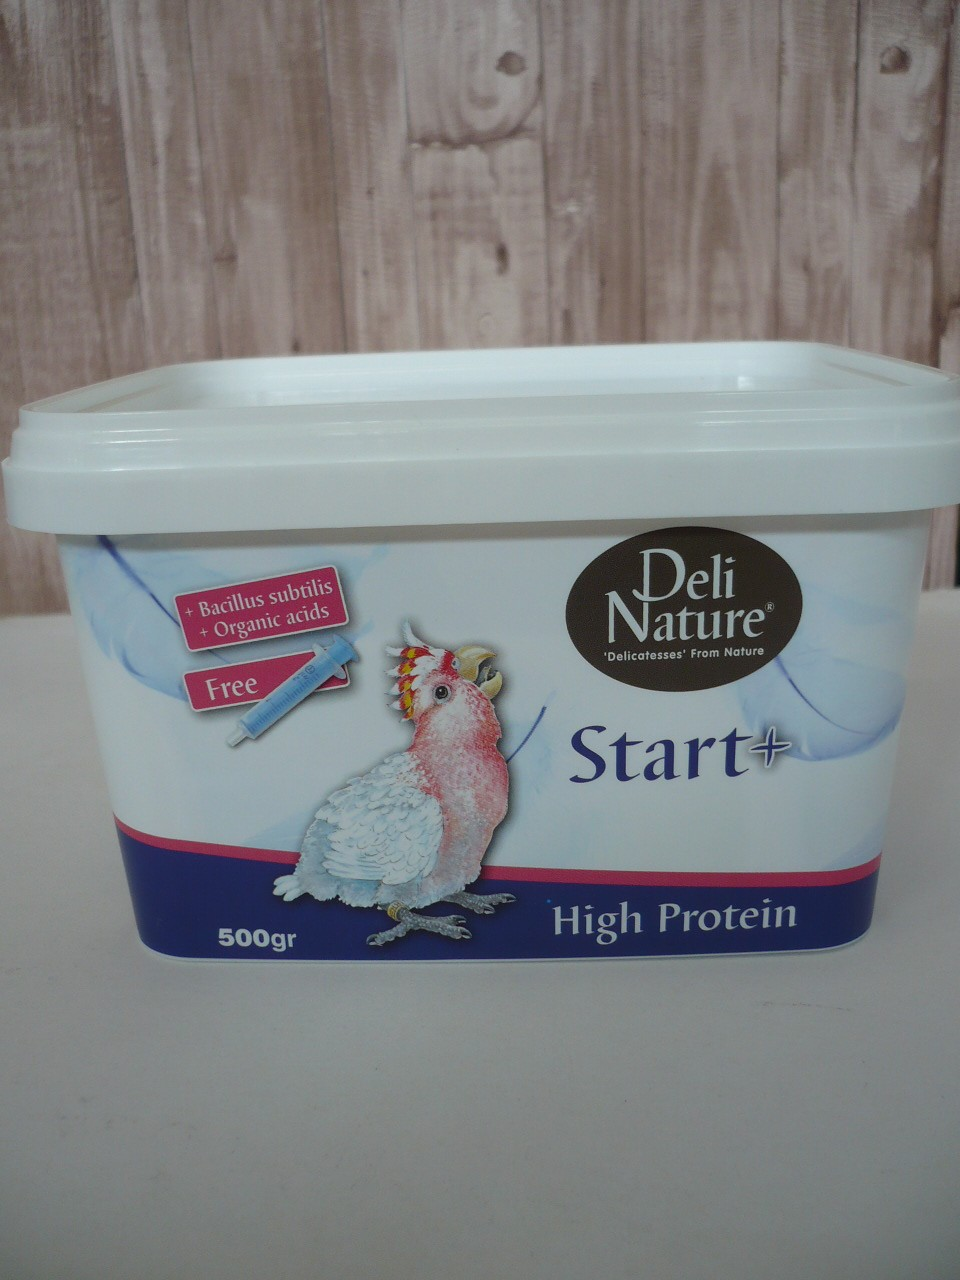 Deli Nature Start + High Protein